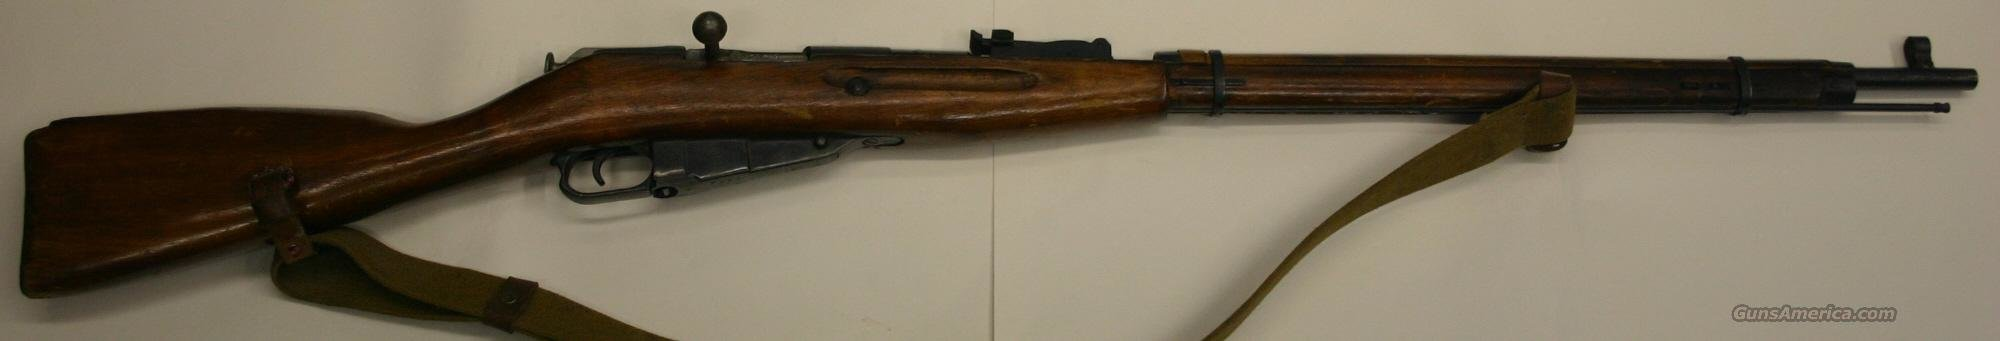 Mosin-Nagant 91/30 7.62 X 54R  Guns > Rifles > Mosin-Nagant Rifles/Carbines